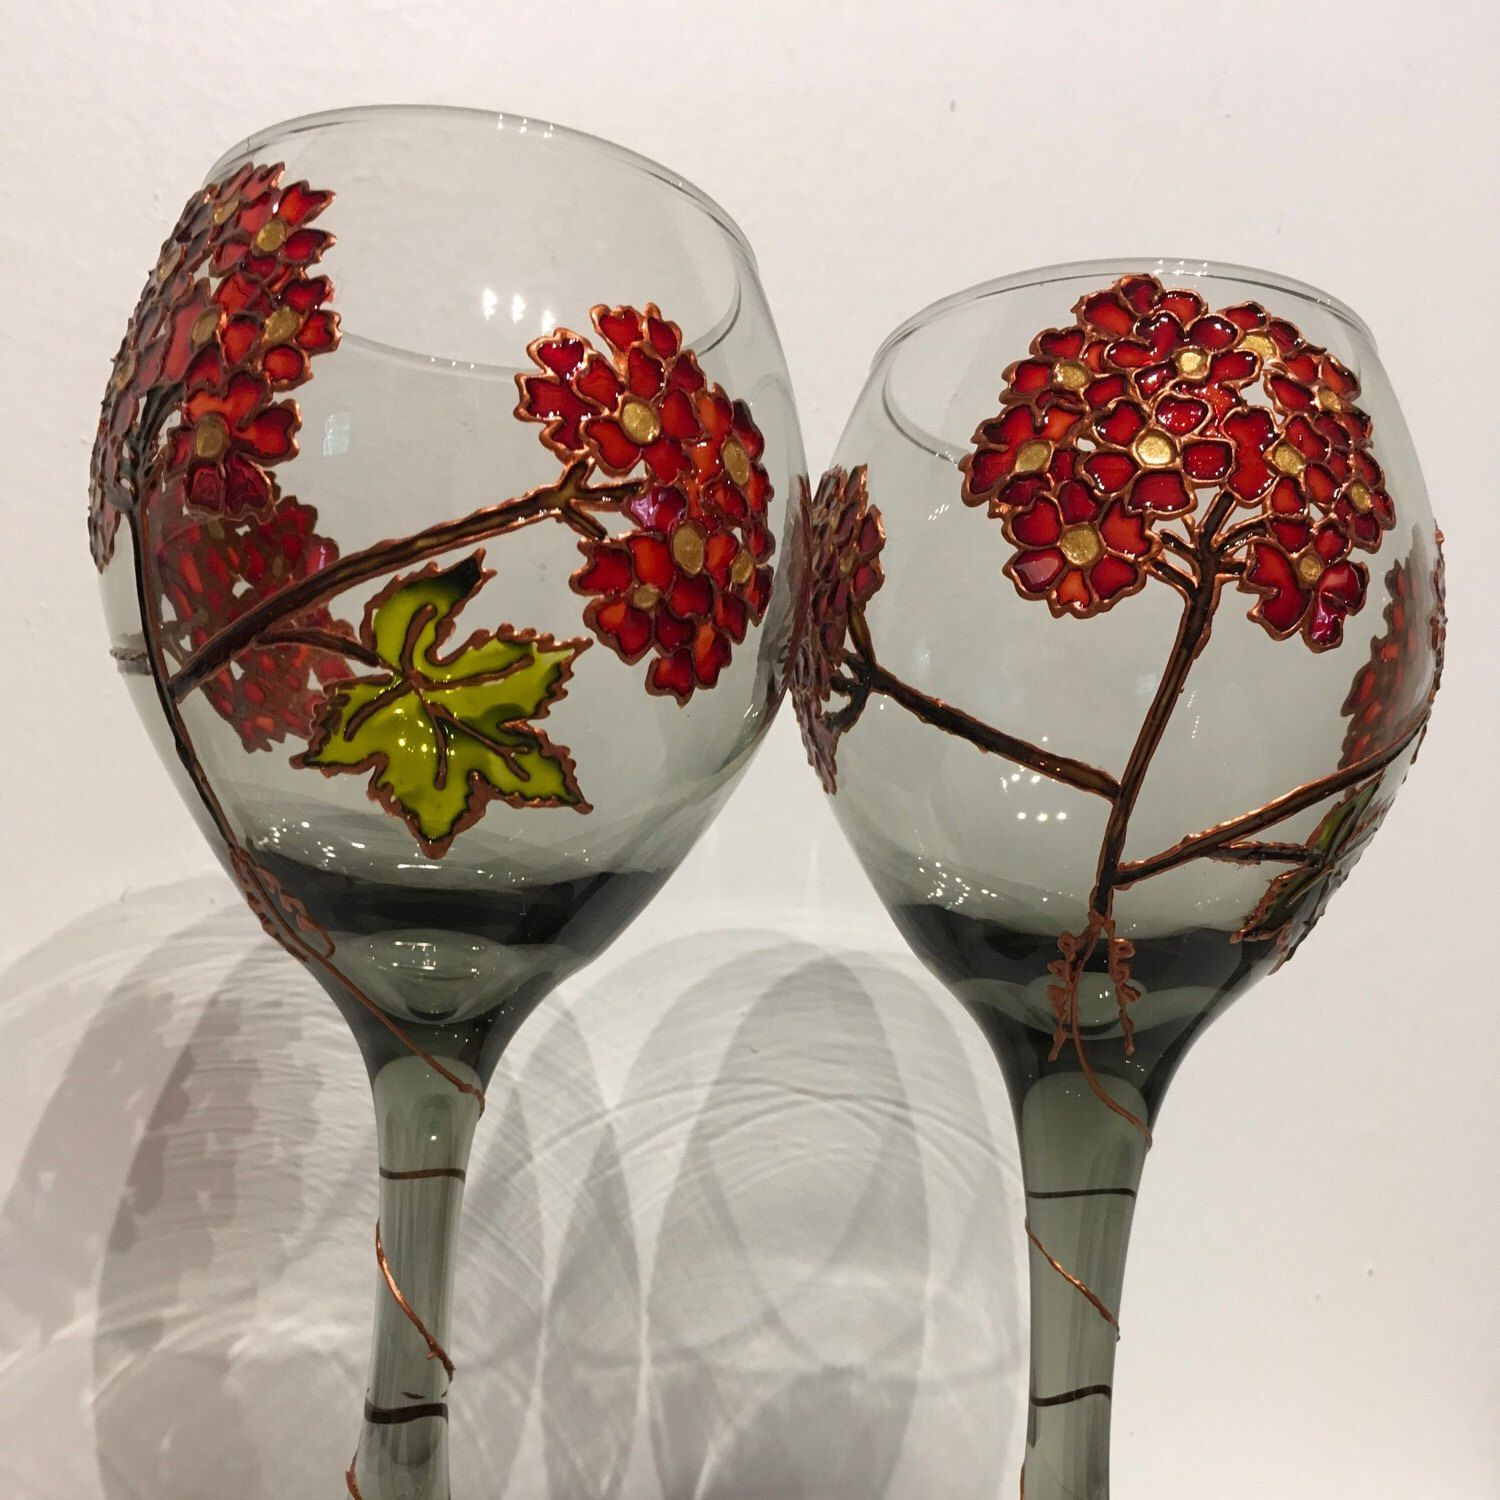 New Listing Hand Painted Wine Glasses Hand Painted Wine Glasses Painted Wine Glasses Glass Painting